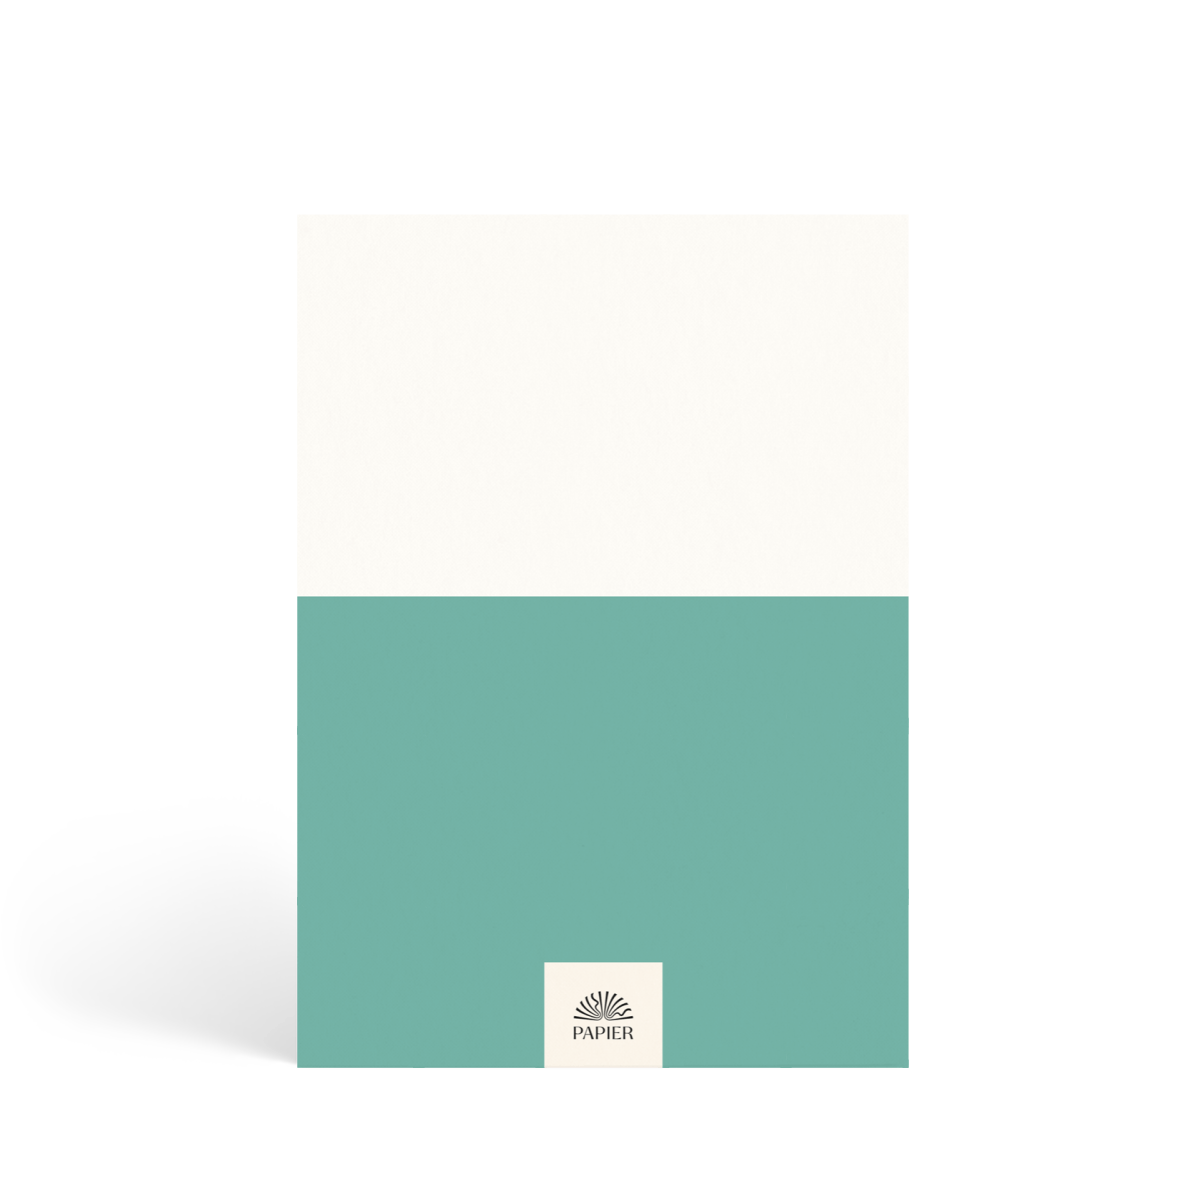 Https%3a%2f%2fwww.papier.com%2fproduct image%2f72152%2f5%2fdemi turquoise 17012 back 1555453448.png?ixlib=rb 1.1